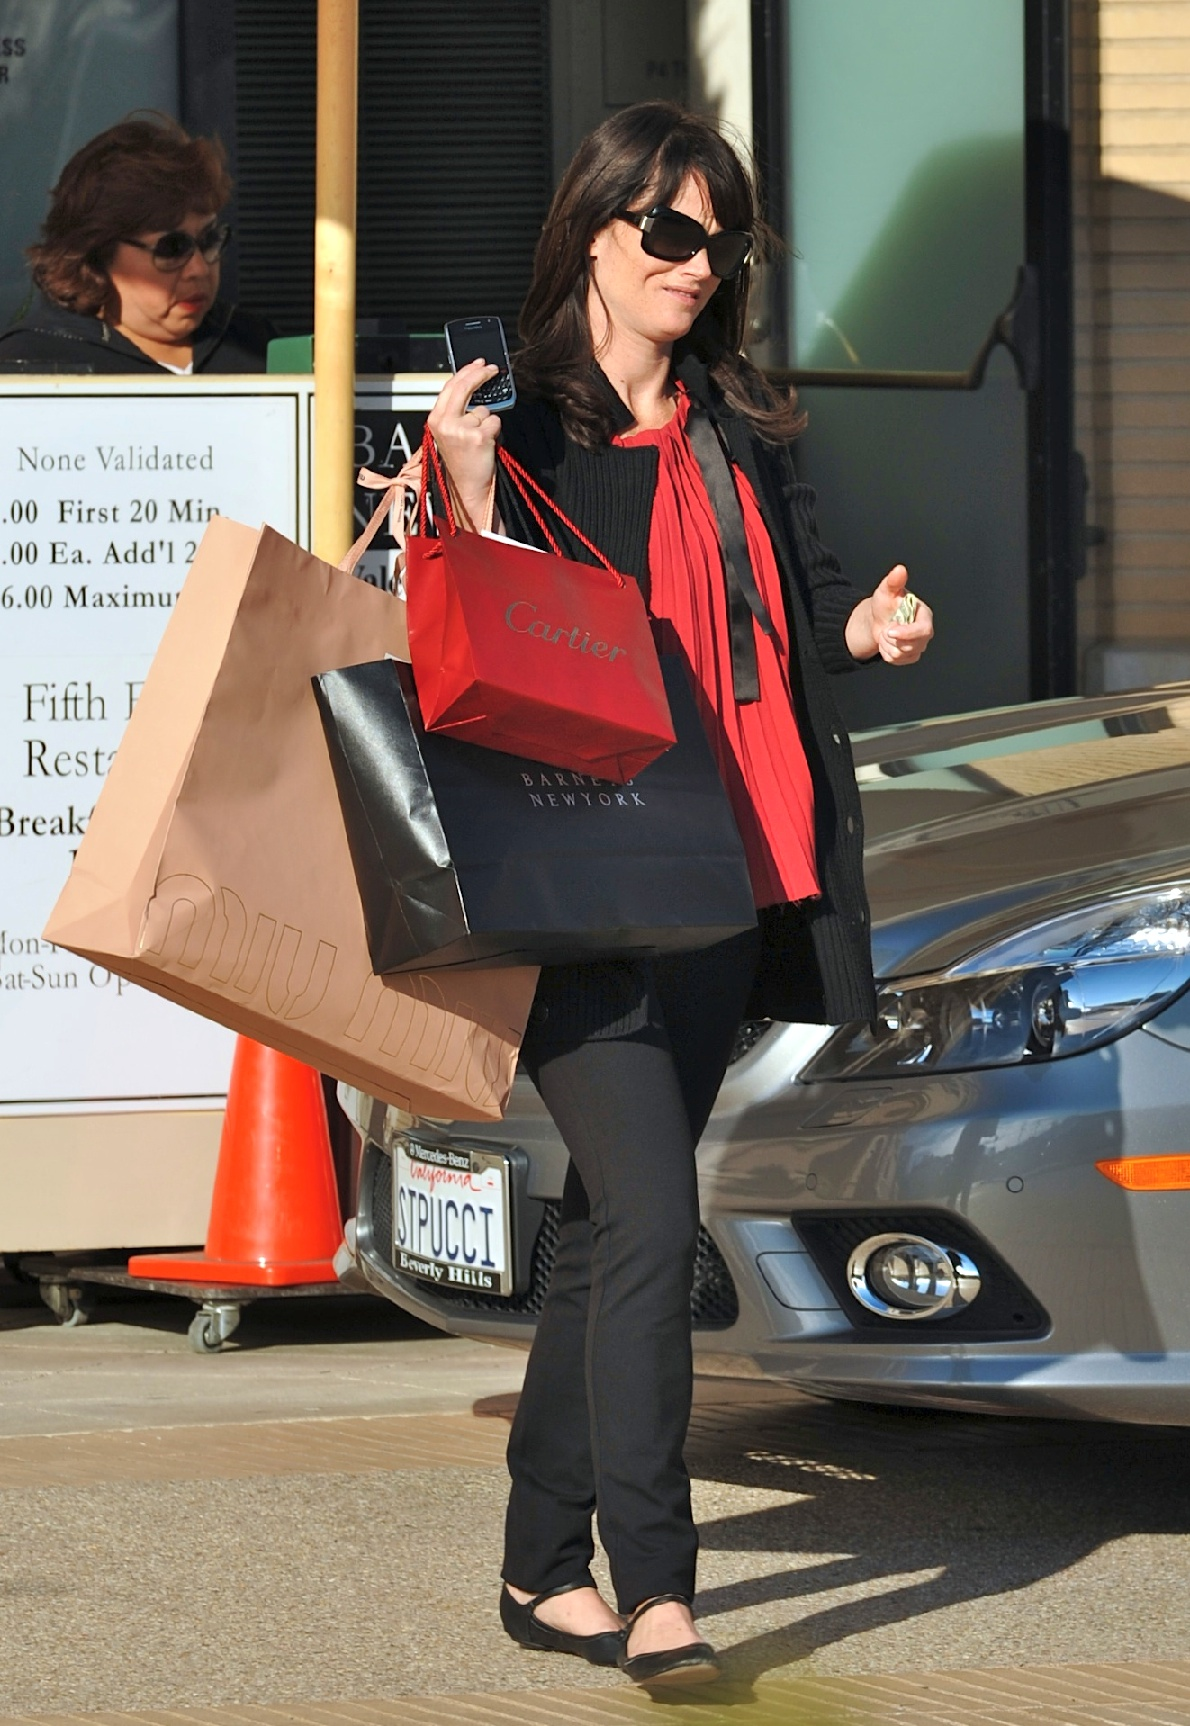 57614_Preppie_-_Robin_Tunney_carries_Cartier_and_Barney36s_bags_back_to_her_car_-_Jan._24_2010_348_122_453lo.jpg